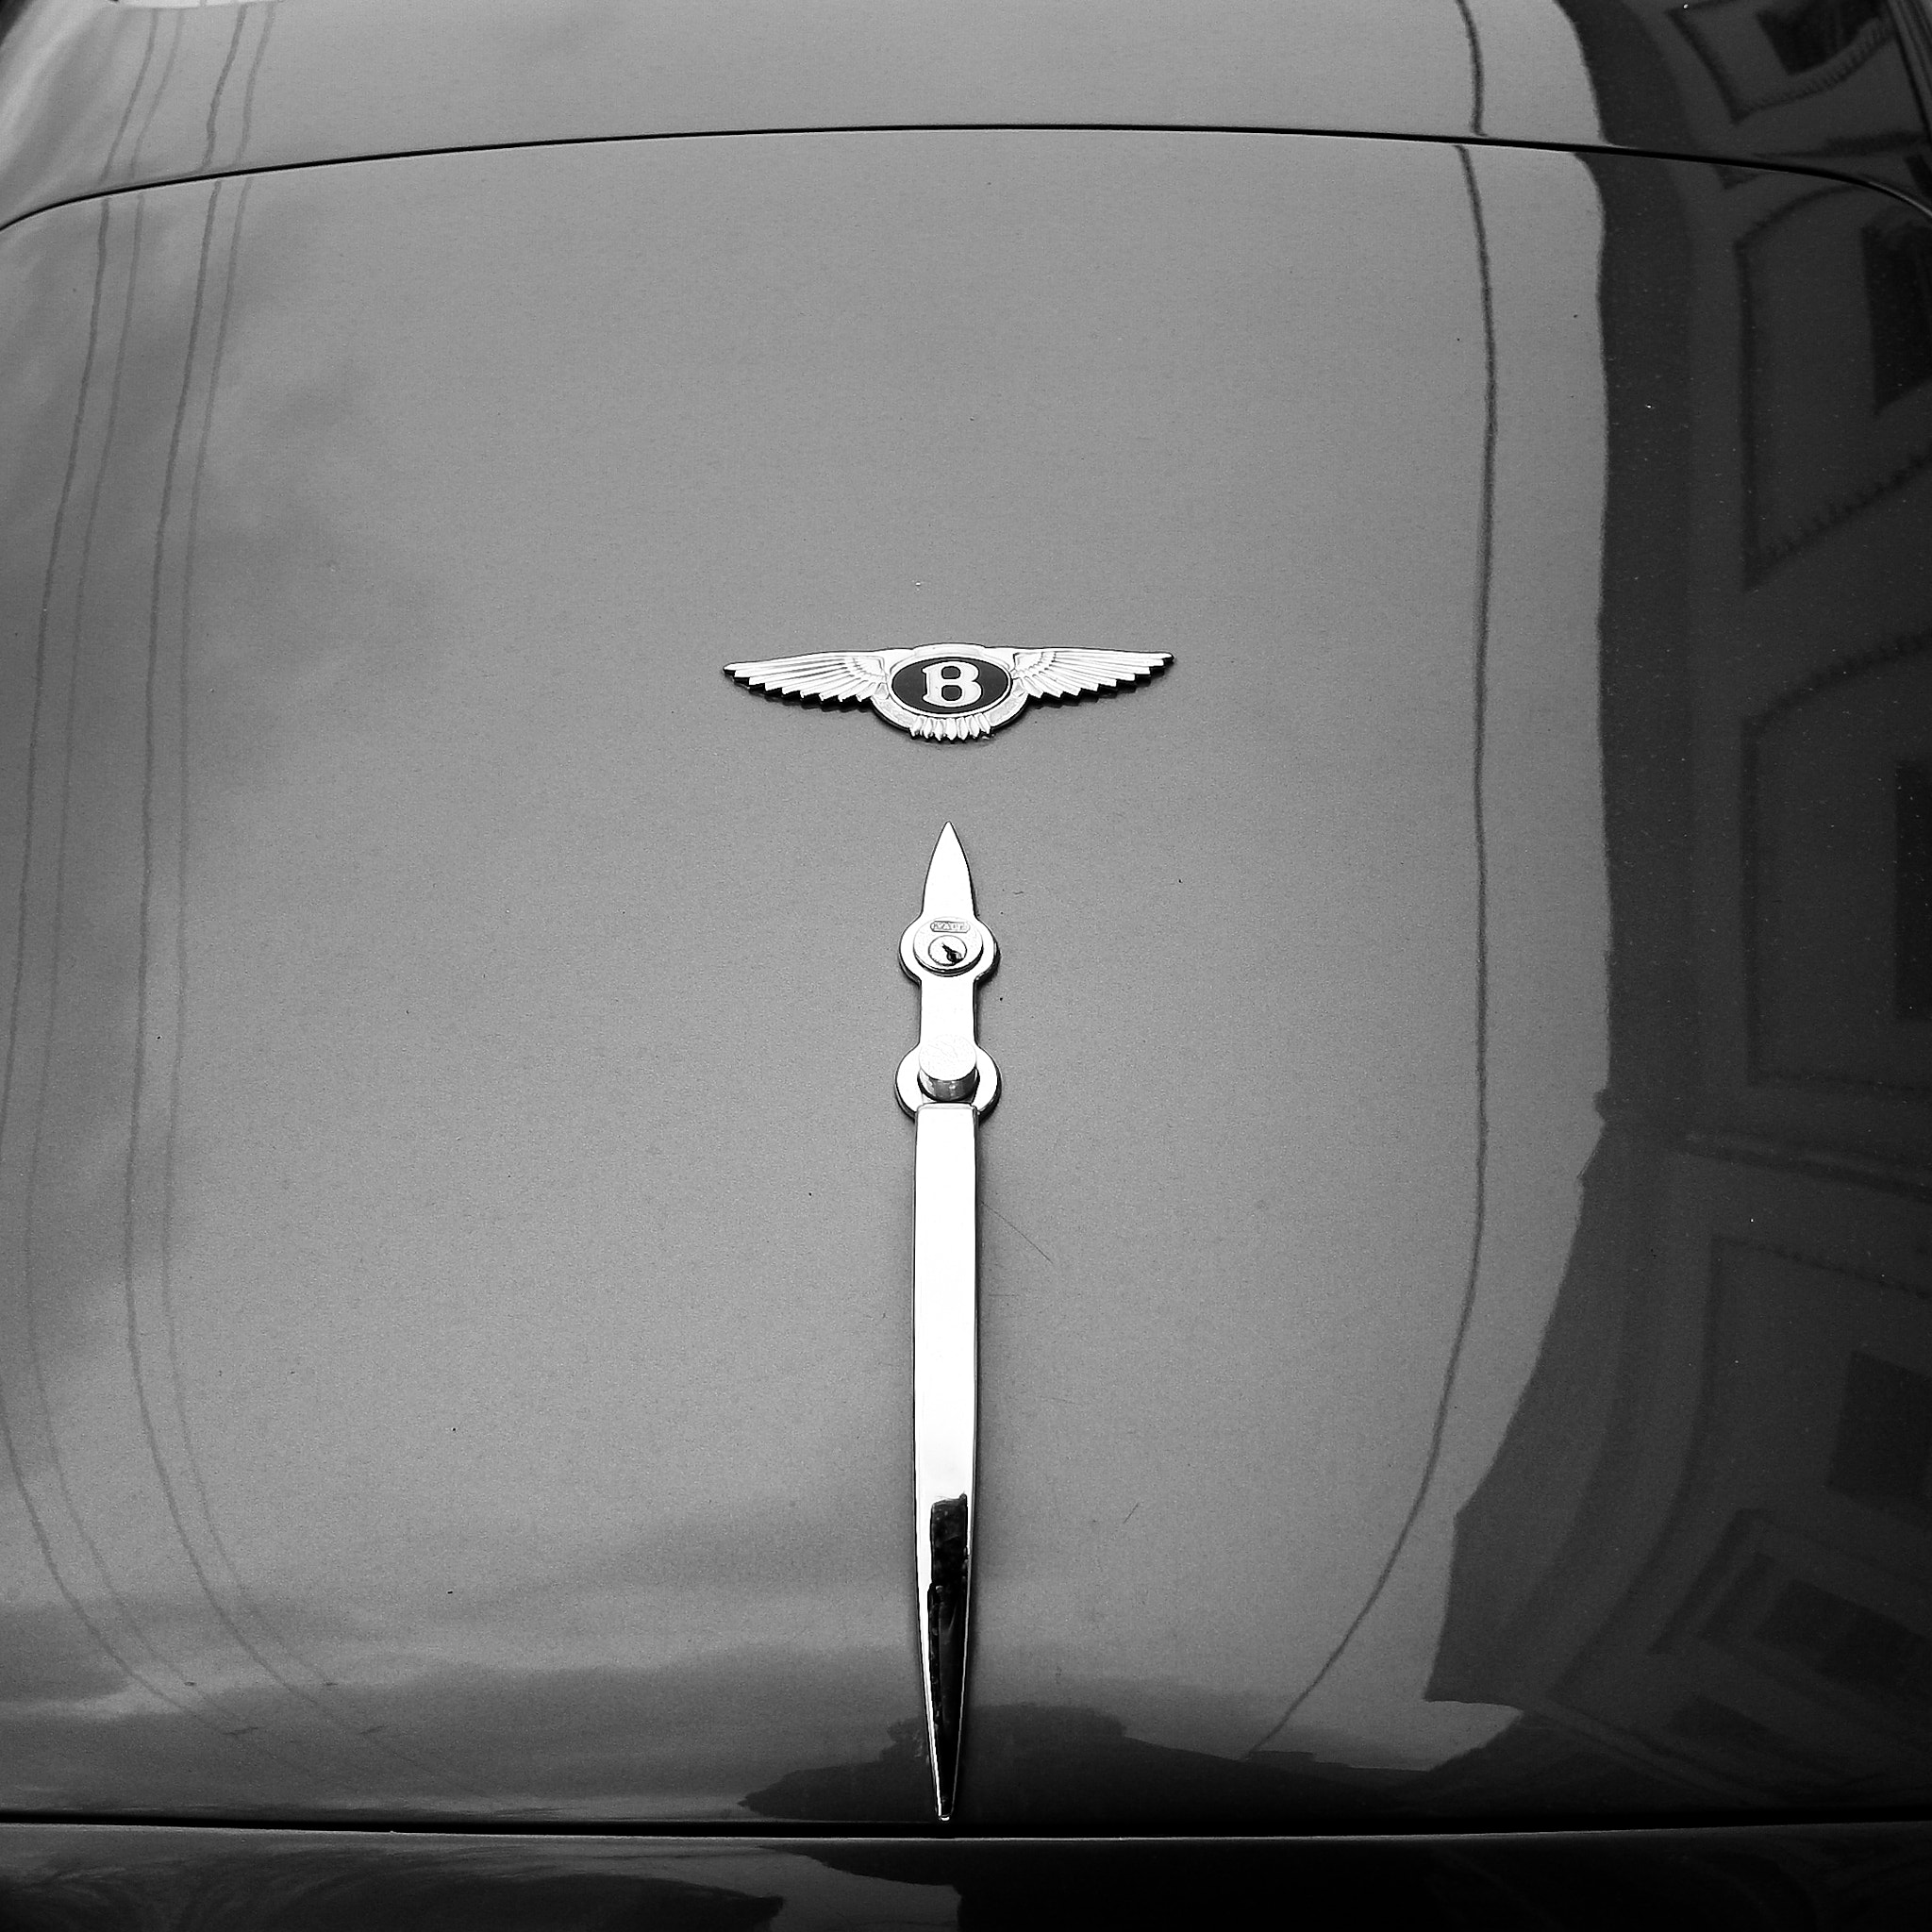 Photograph Bentley by Pavel Bednyakov on 500px